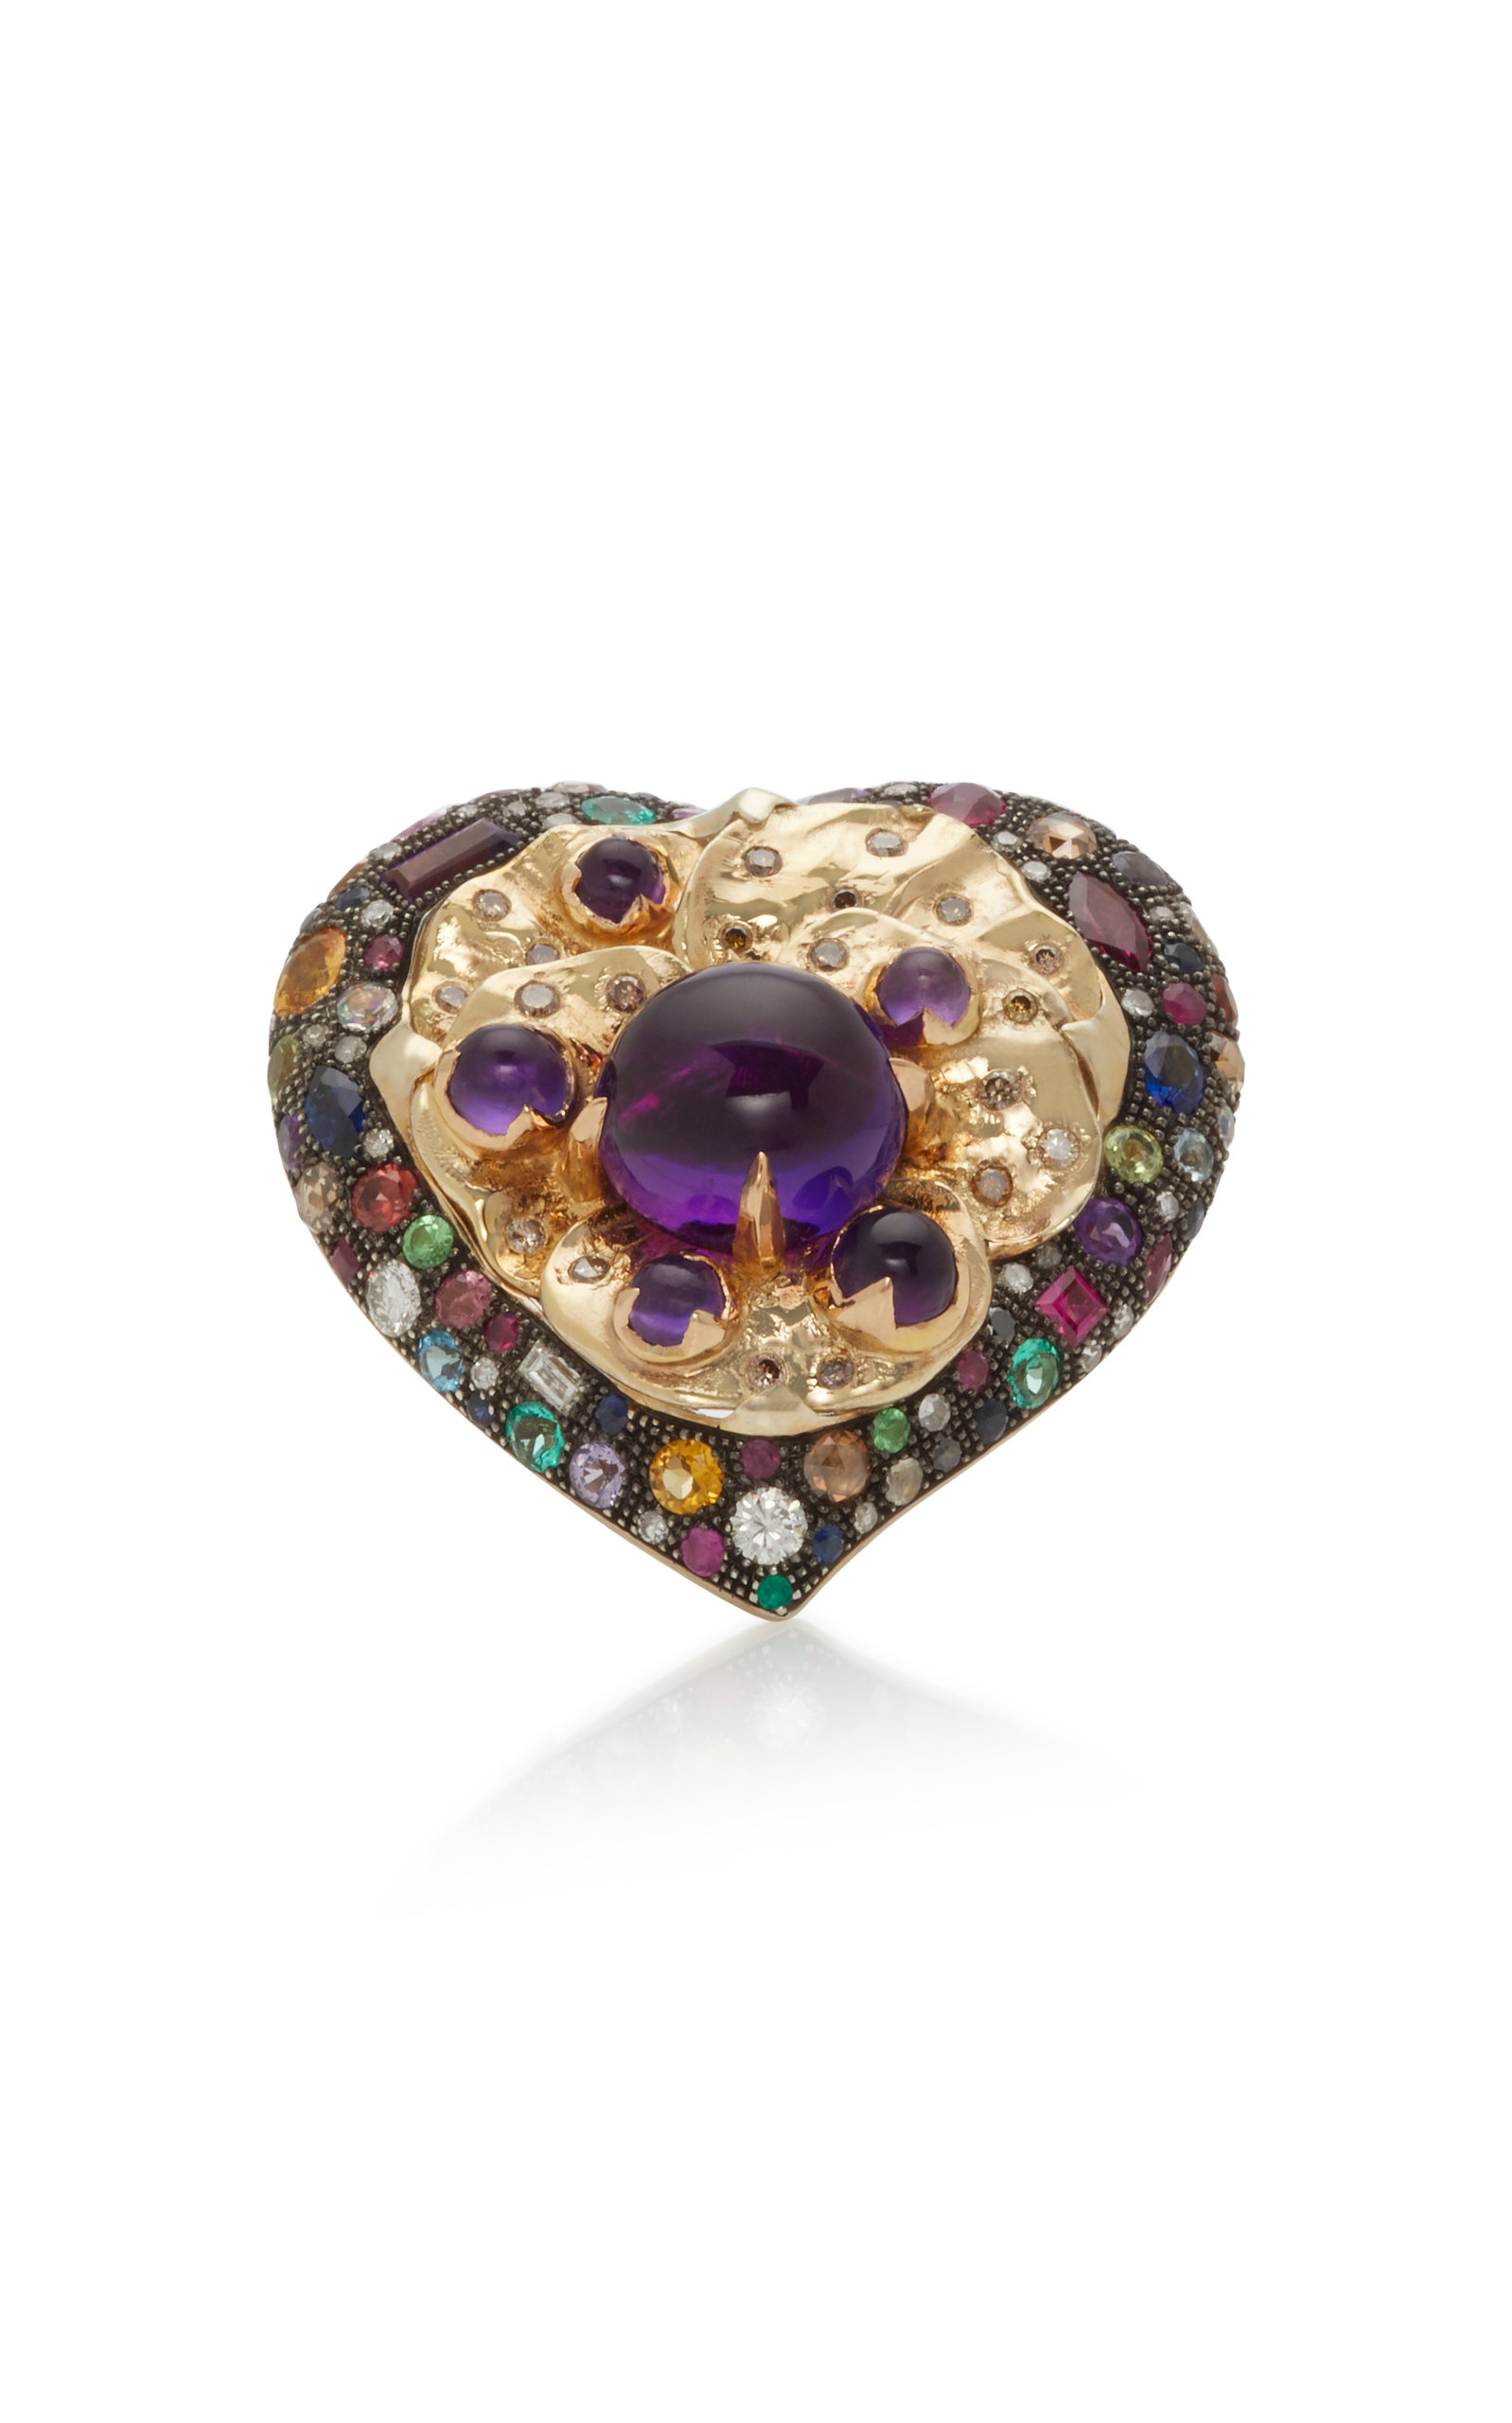 SYLVIE CORBELIN Heart And Pansy 18K Gold Multi-Stone Ring in Purple